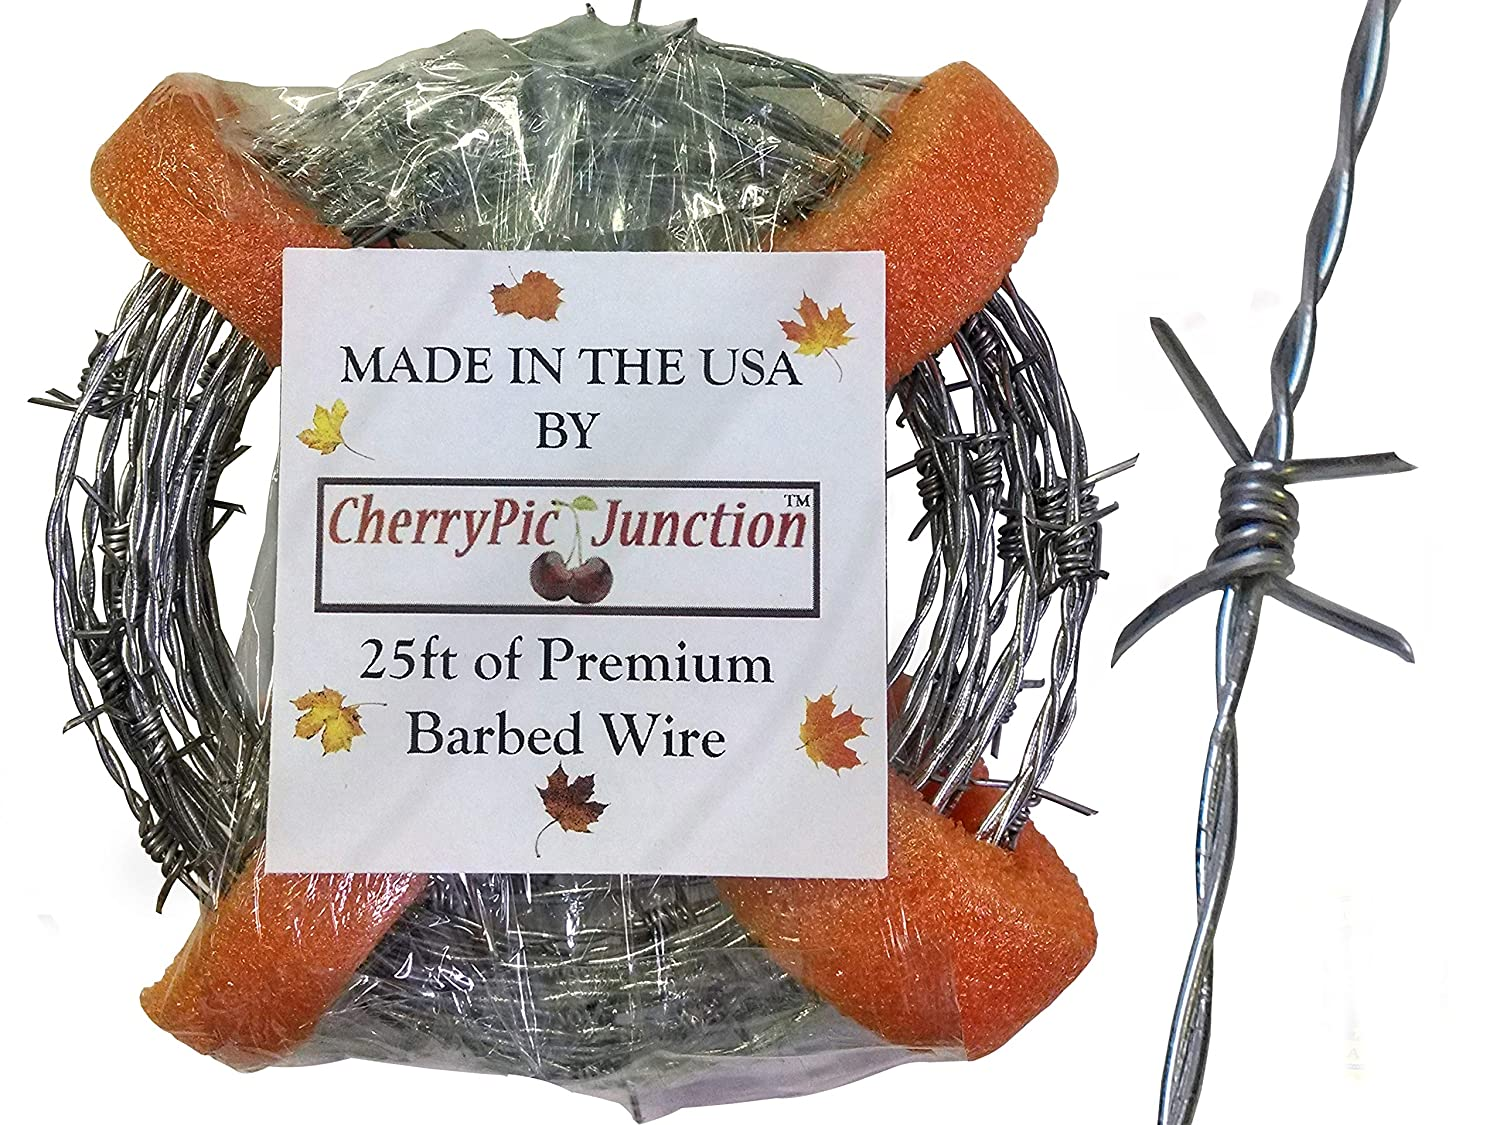 50 Feet Real Barbed Wire - Light Duty 18 gauge 4 pt MADE IN USA - Wire for Crafts CherryPic Junction